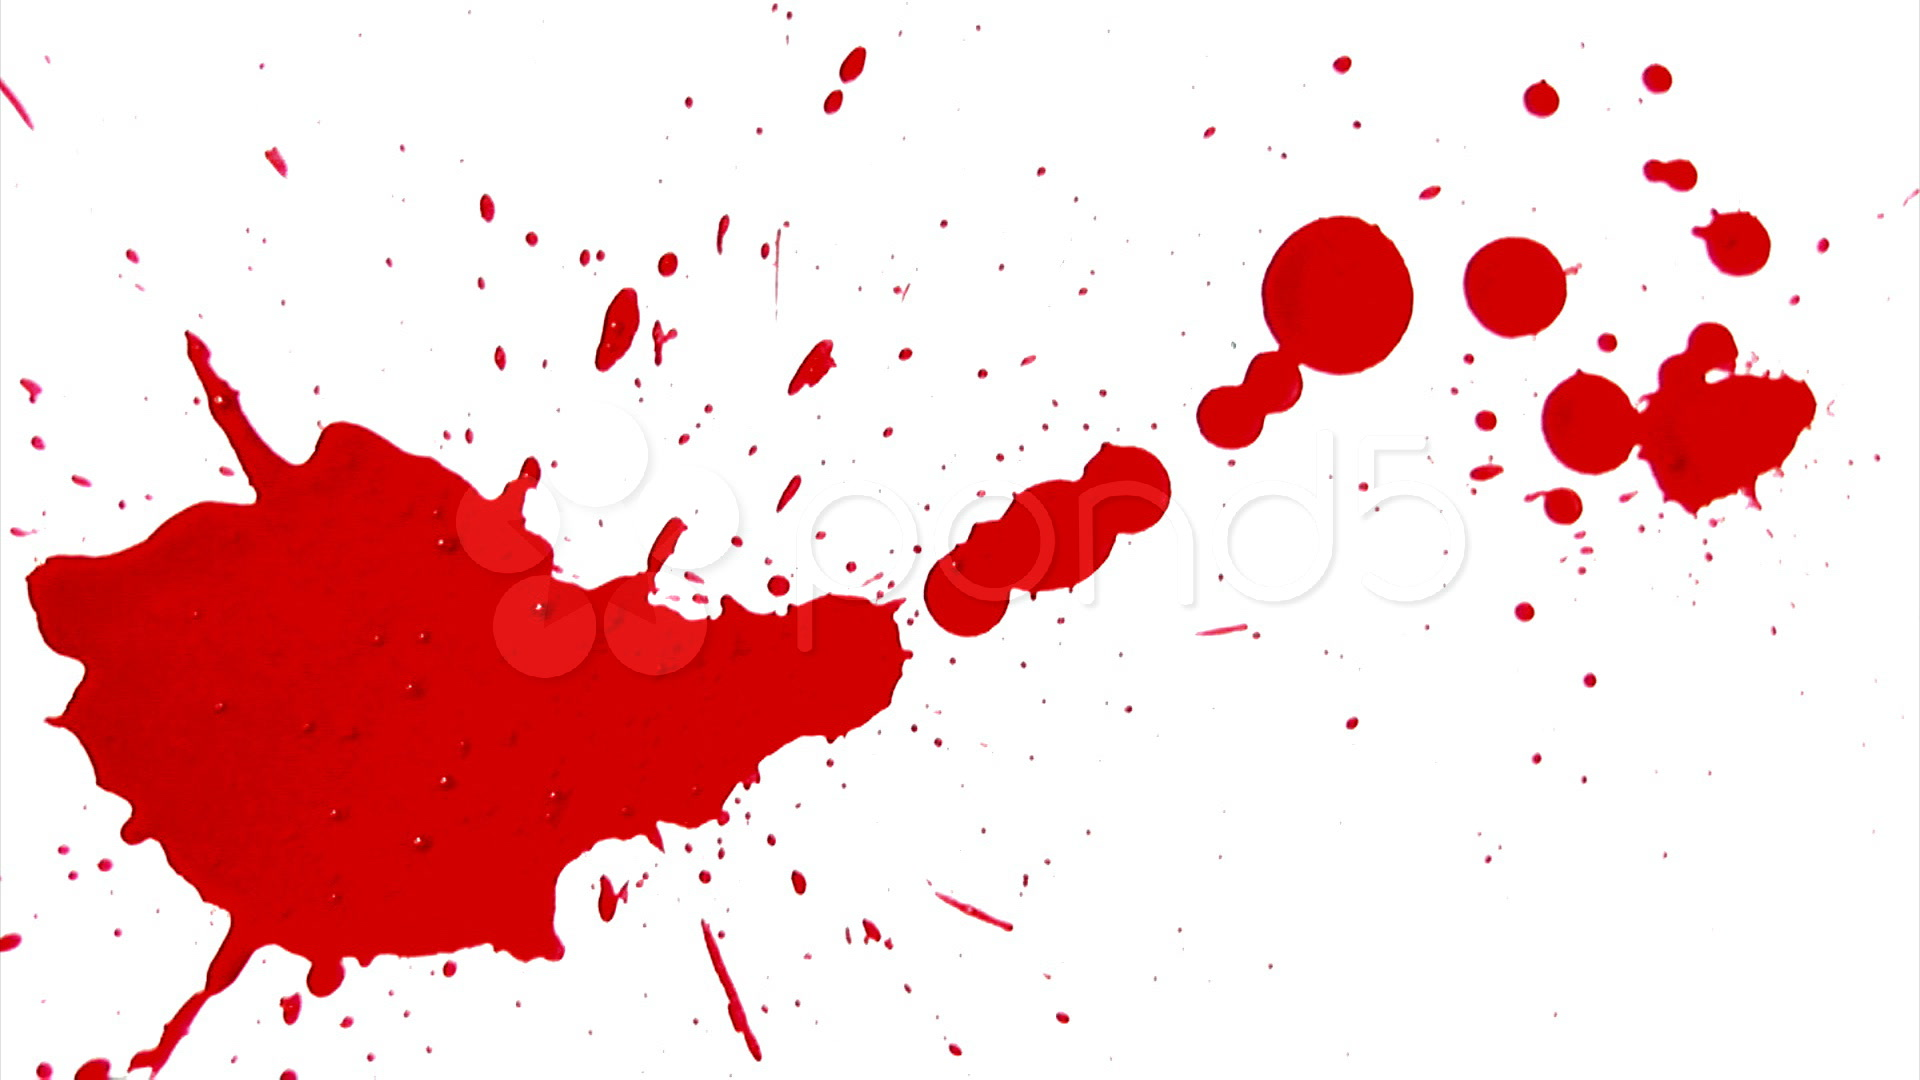 Blood Splatter Animation Clipart Best-Blood Splatter Animation Clipart Best-3